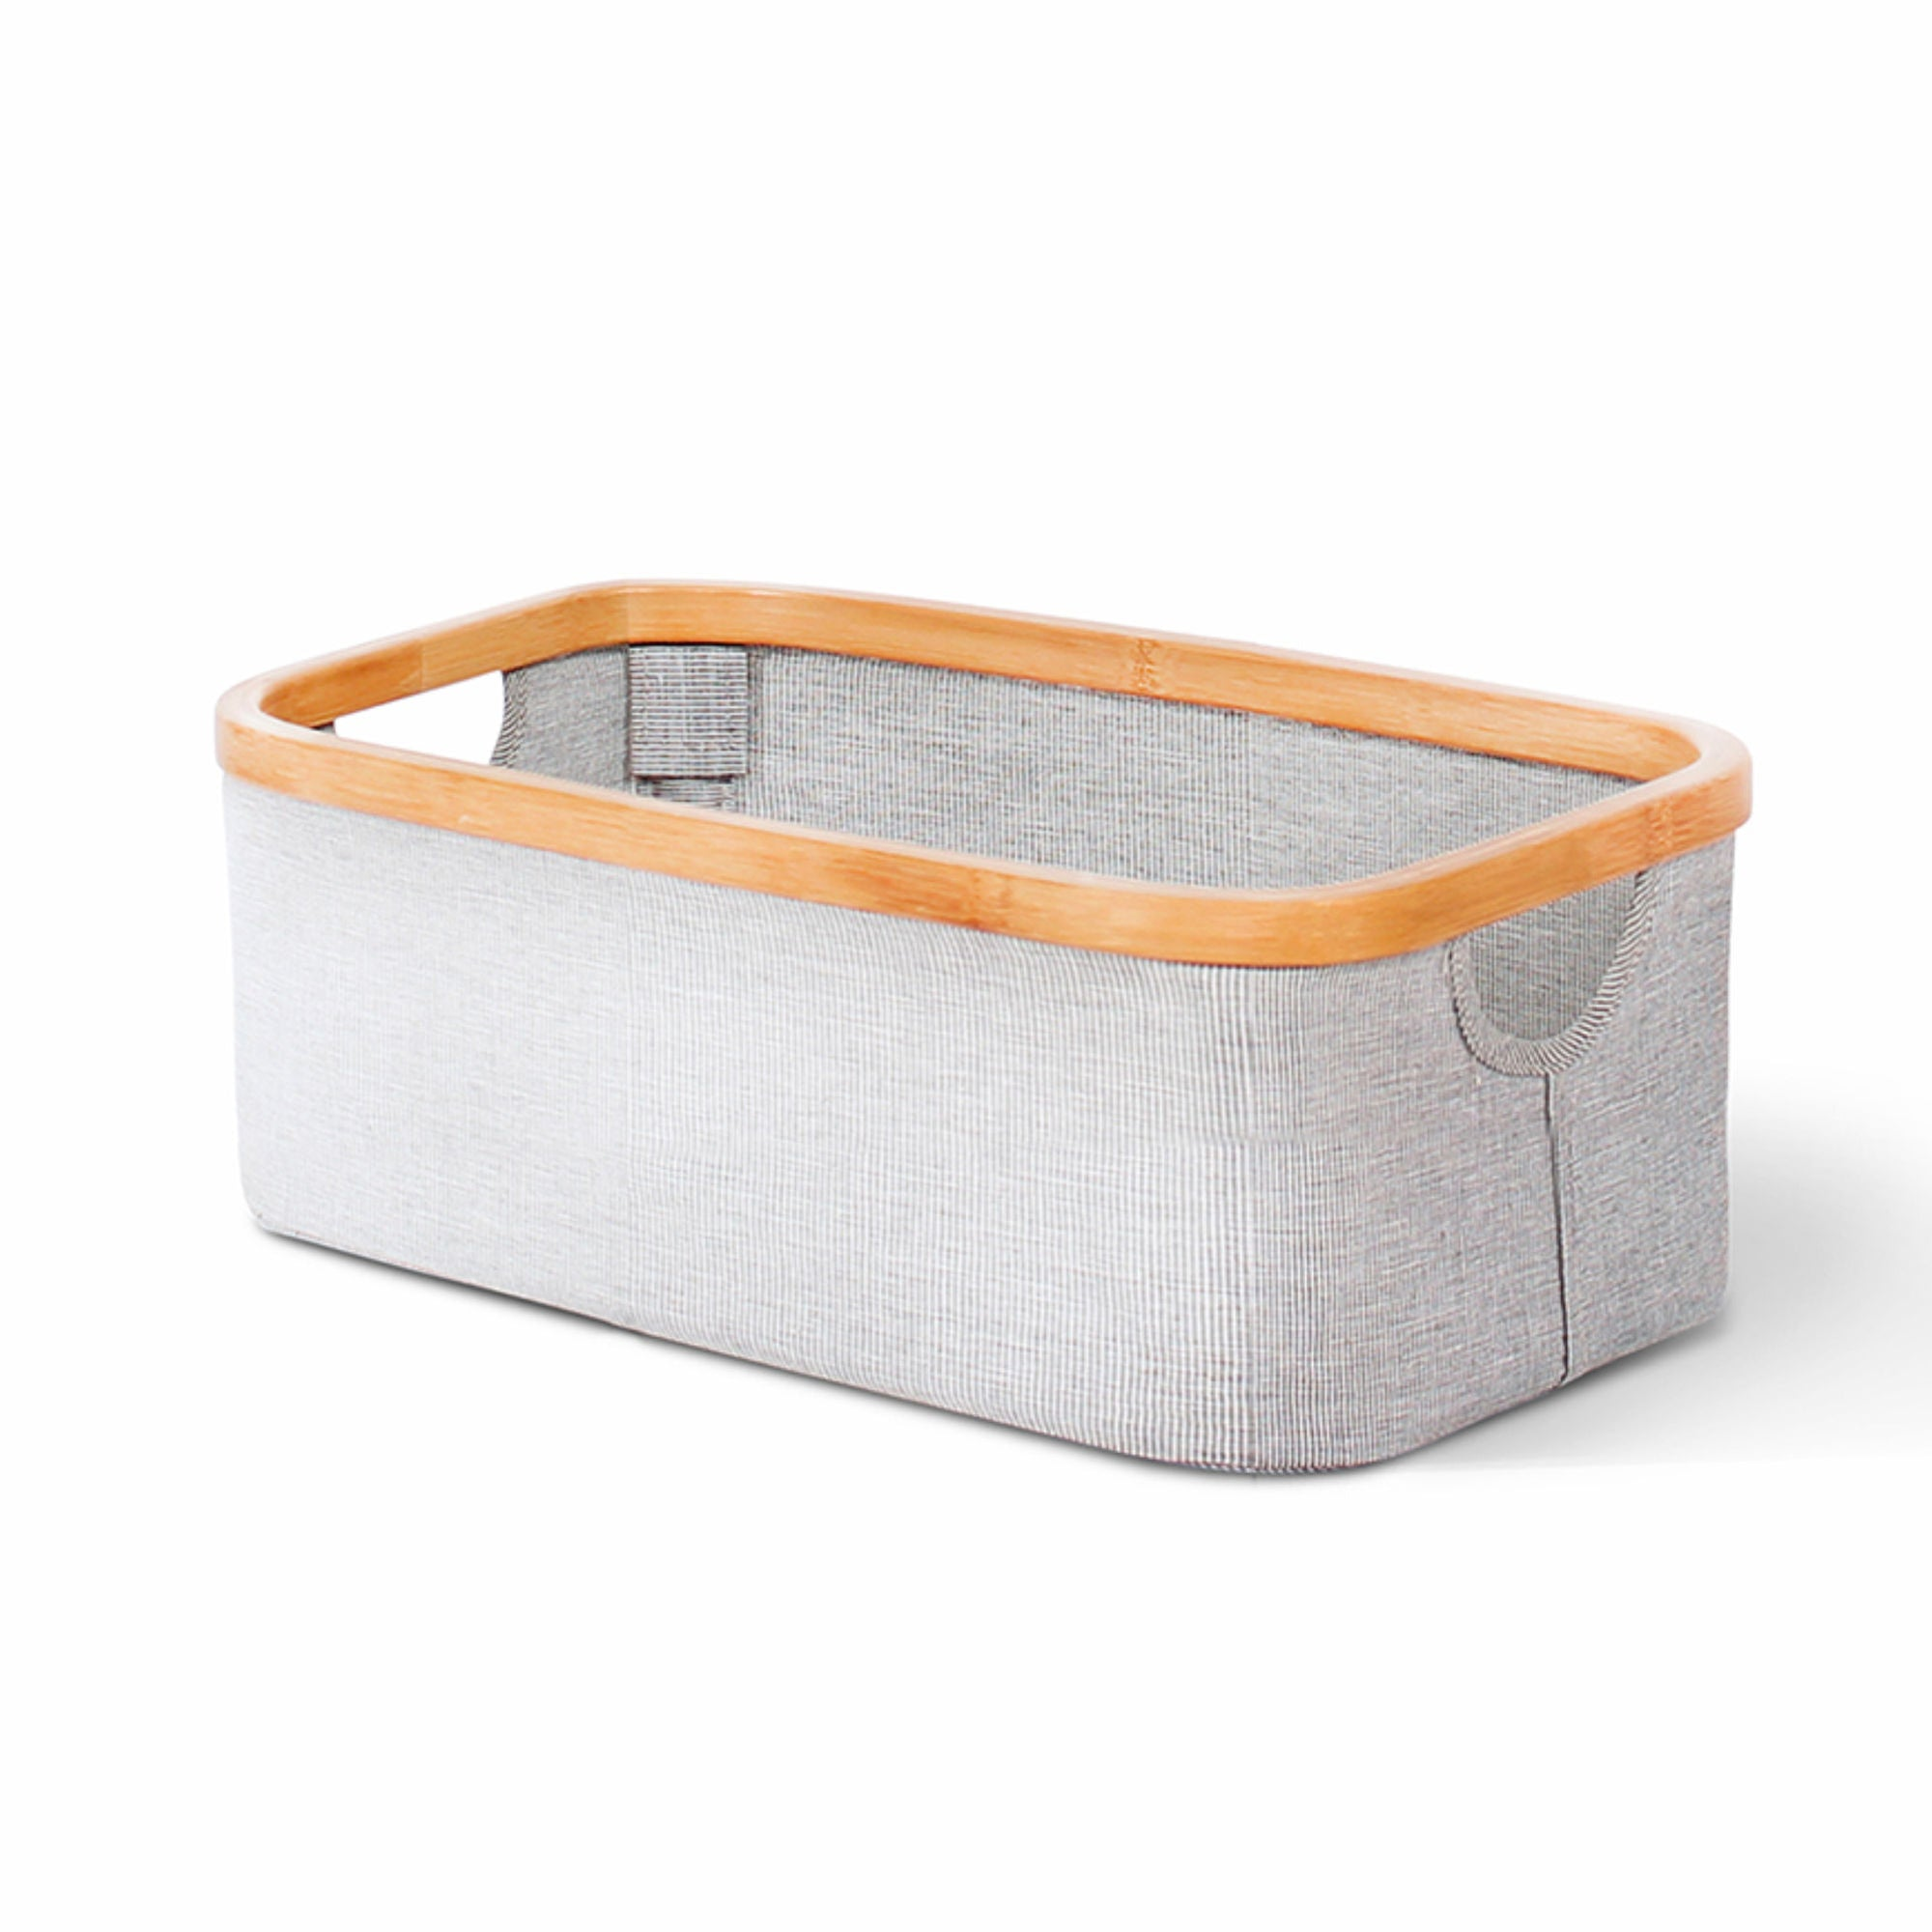 Gudee Frasa storage basket, rectangular